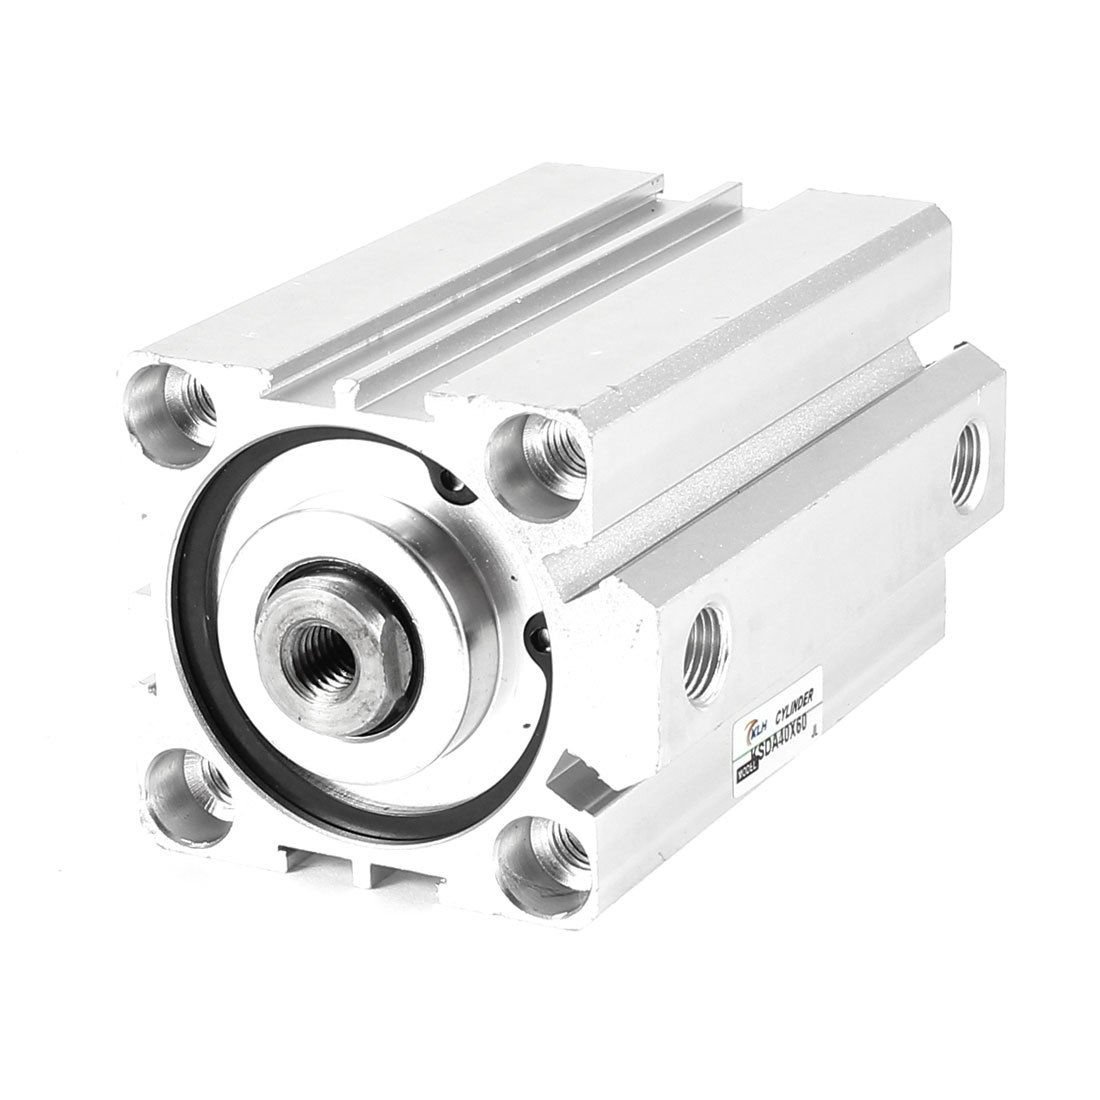 1 Pcs 50mm Bore 30mm Stroke Stainless steel Pneumatic Air Cylinder SDA50-30 1 pcs 50mm bore 25mm stroke stainless steel pneumatic air cylinder sda50 25